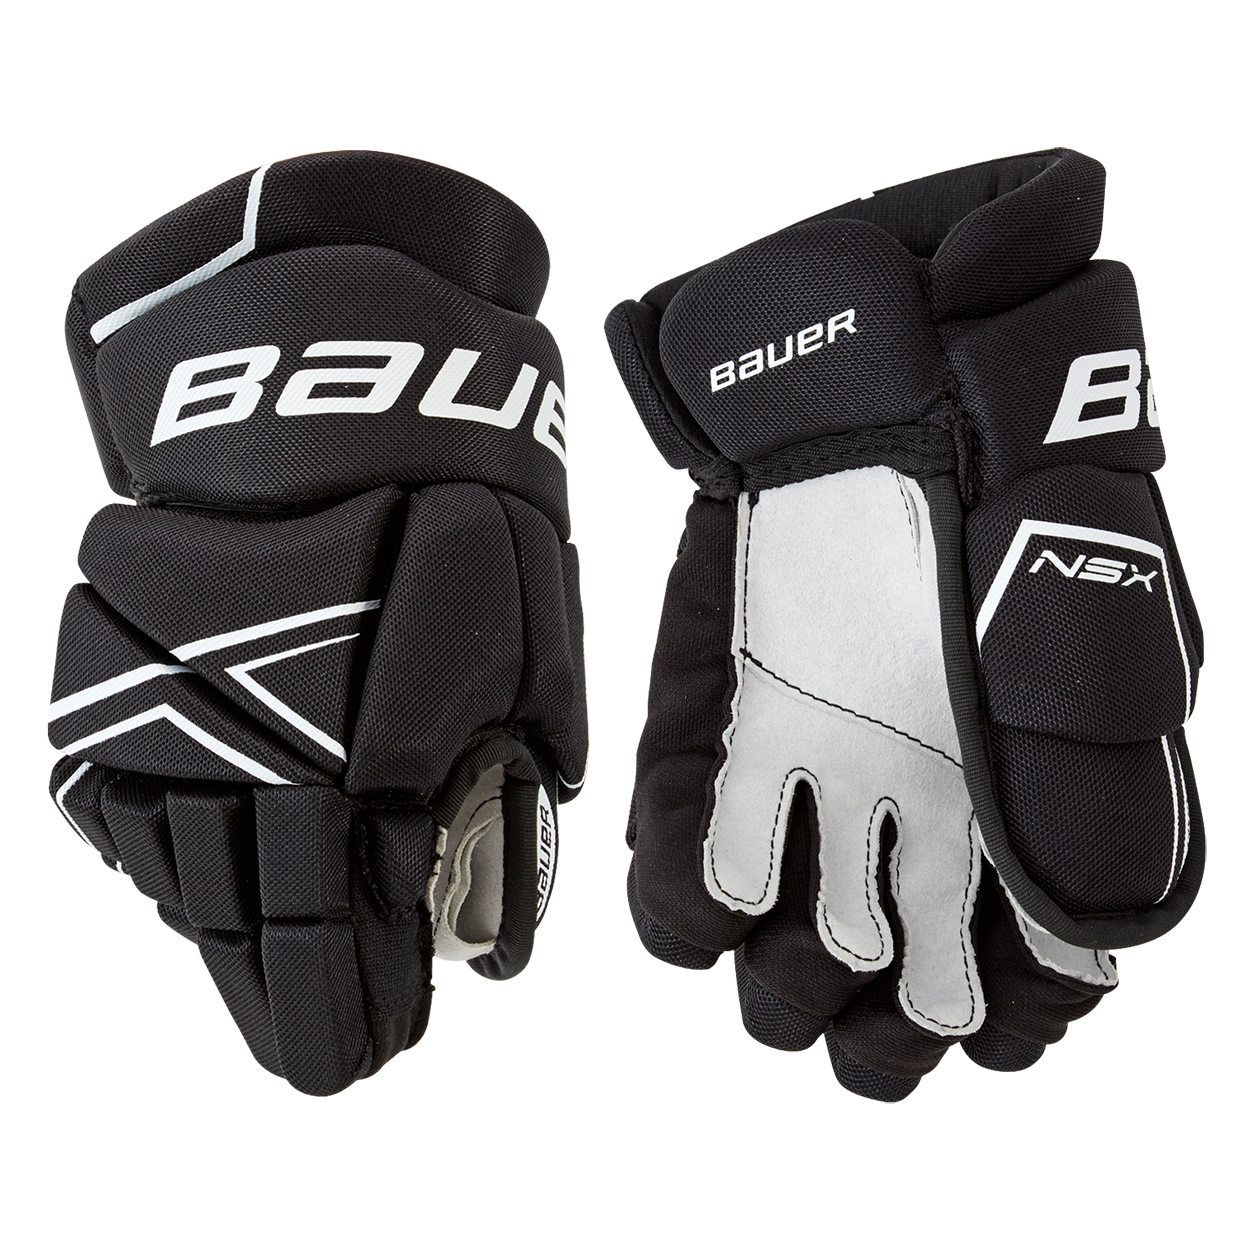 NSX Glove Youth,Schwarz/weiß,Medium